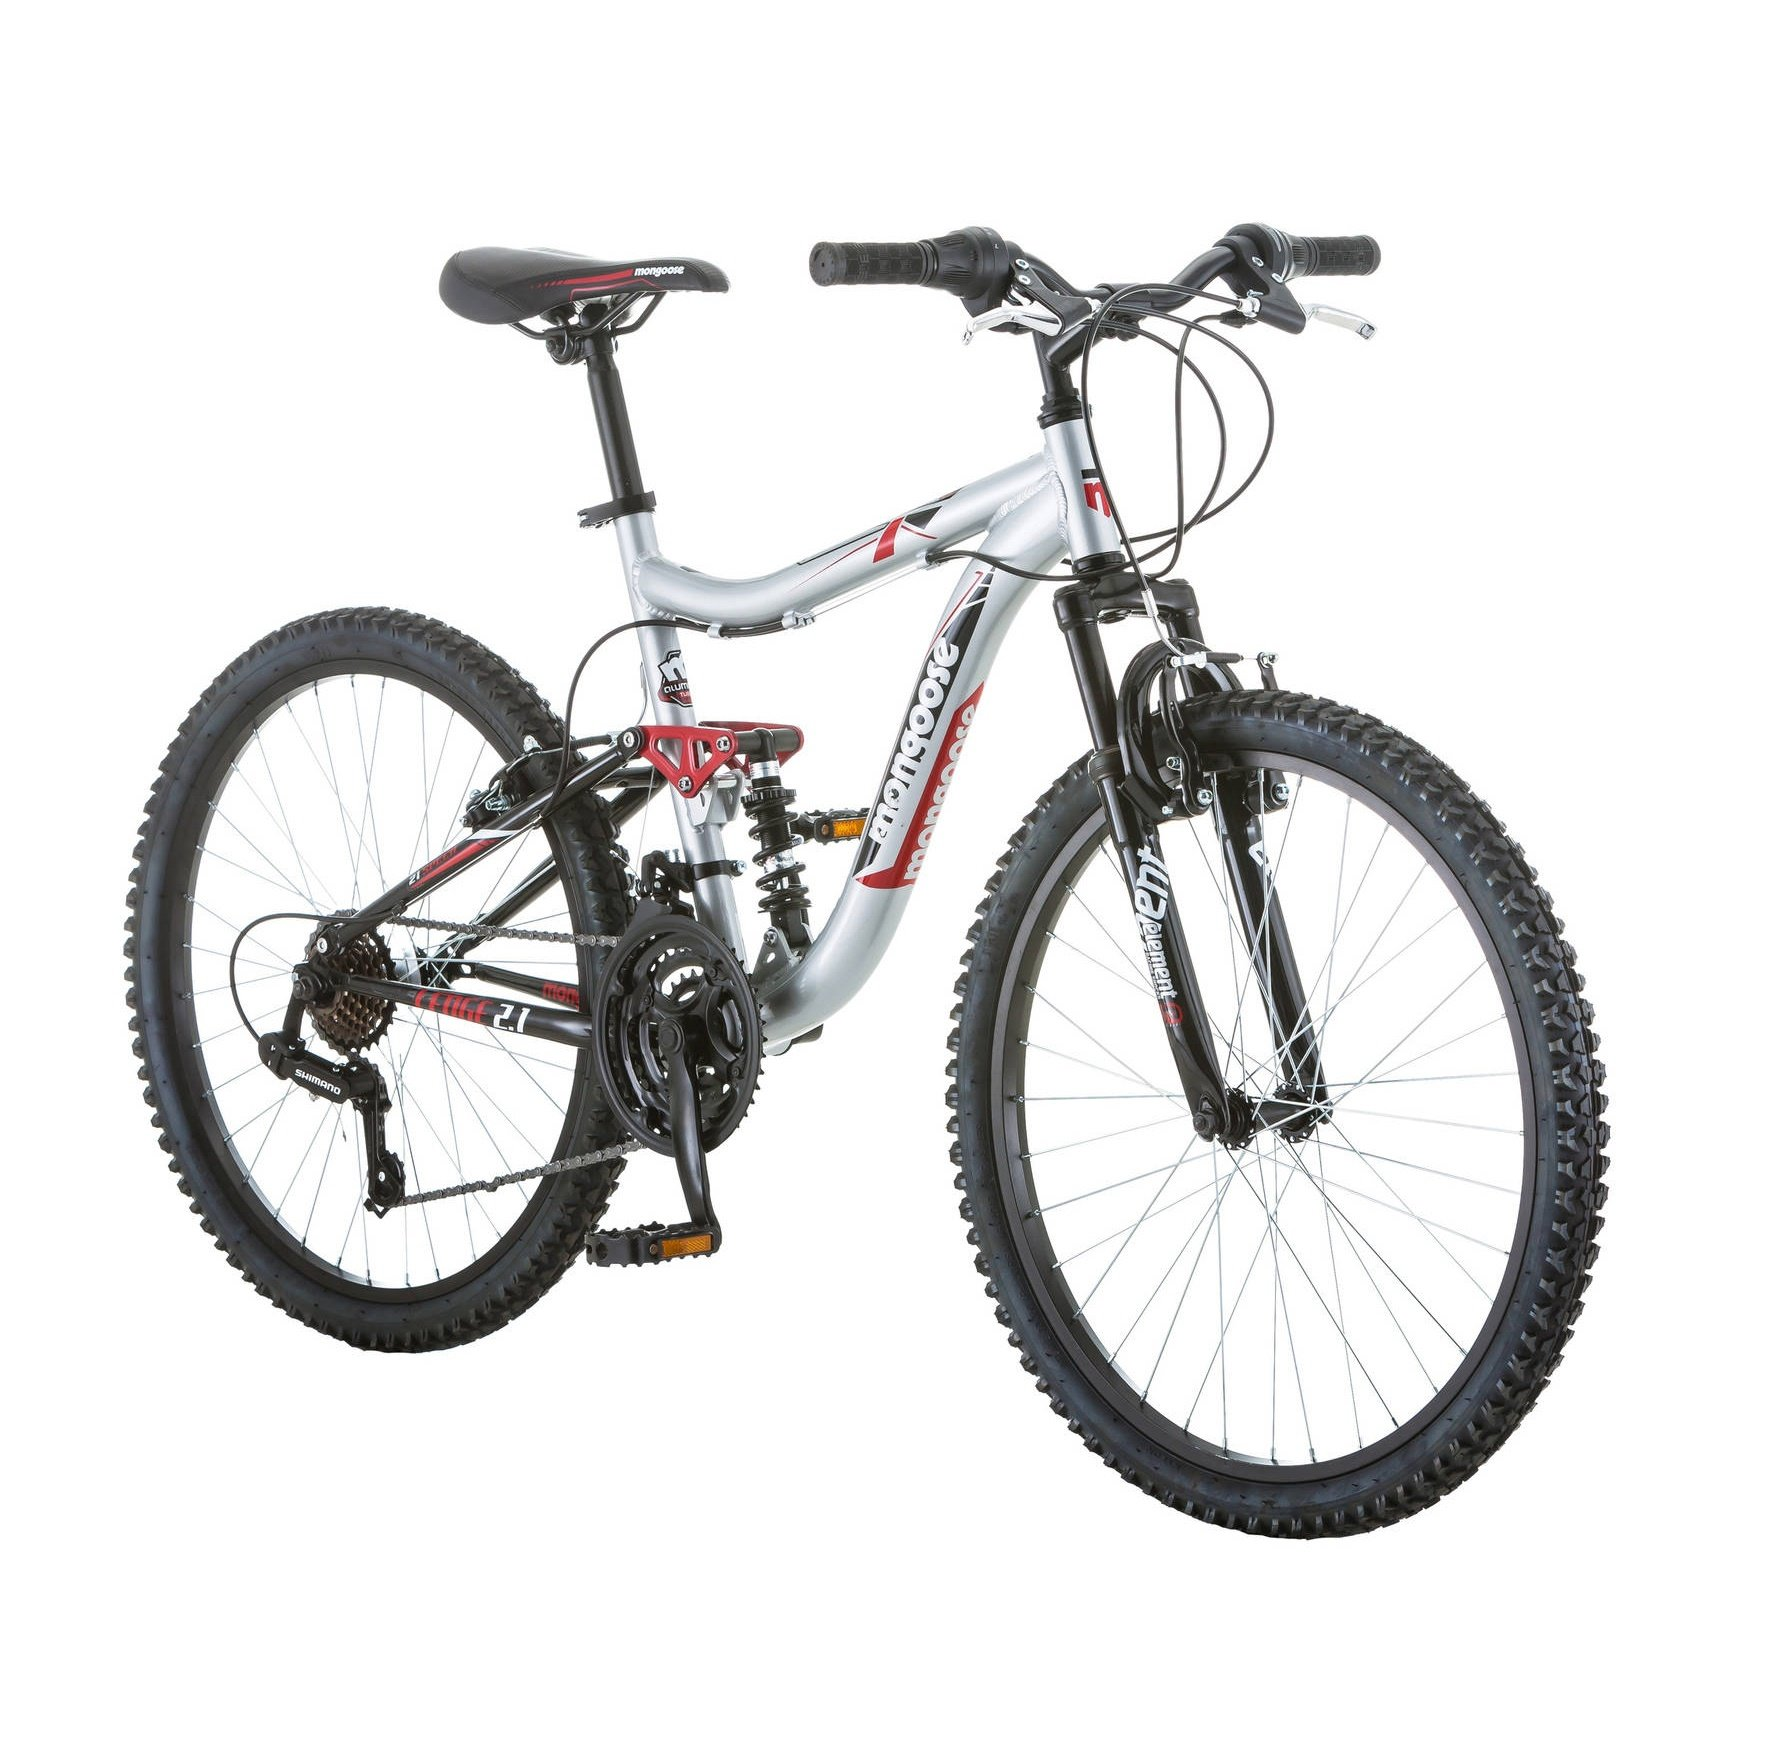 24'' Mongoose Ledge 2.1 Boys' Mountain Bike, Silver/Red by Mongoose